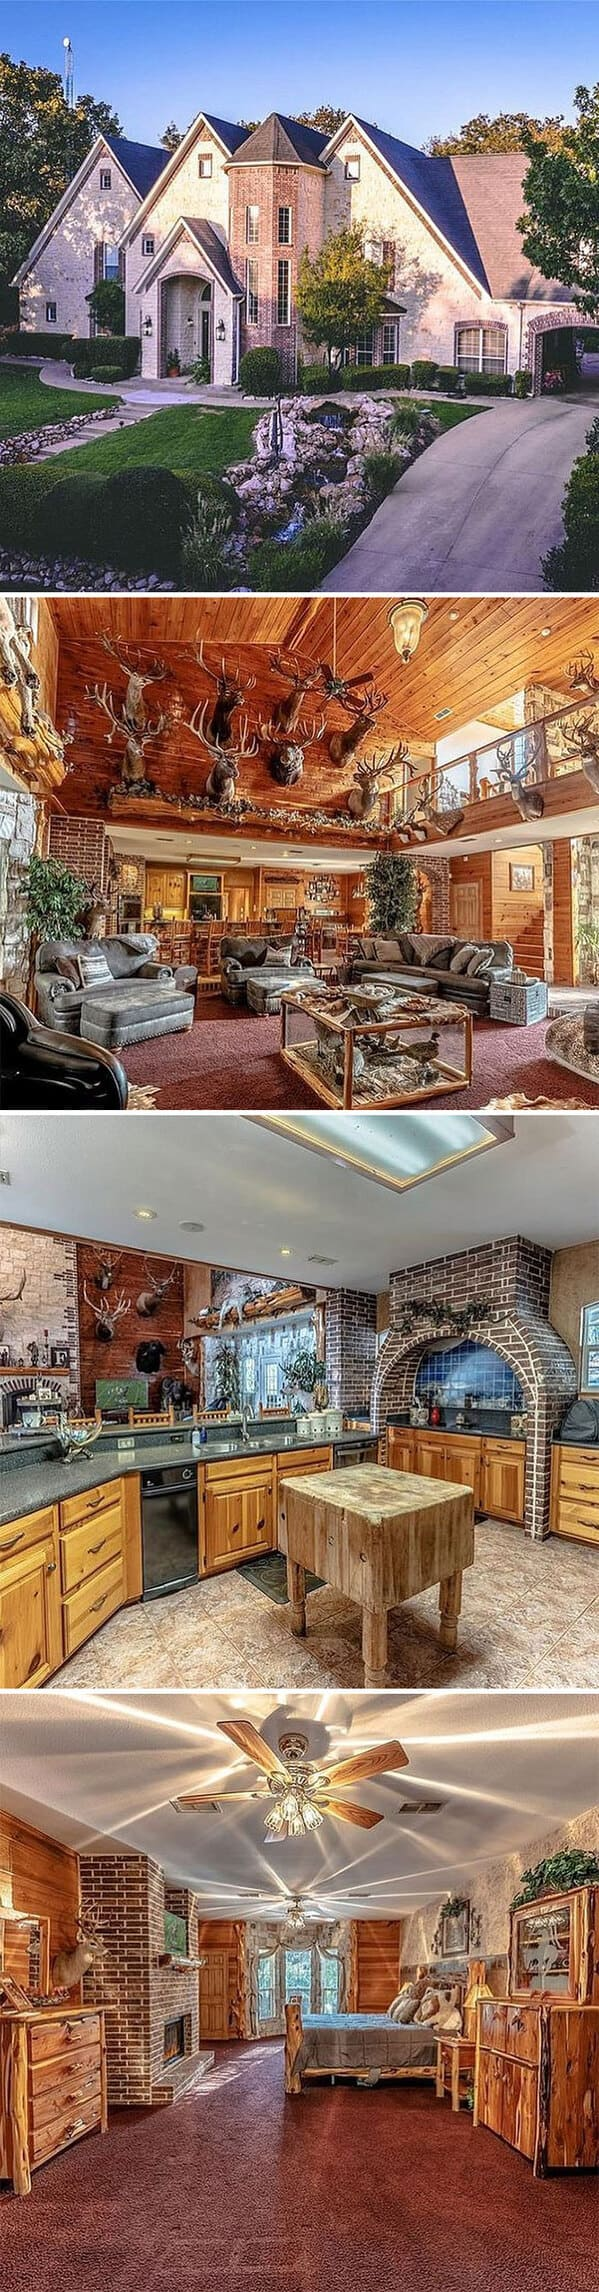 lots of deer on the wall, Zillow gone wild, weird and funny real estate listings, real estate agents who did extra, lol, funny pics of houses, ridiculous houses to buy, zillowgonewild, instagram, humor, funny pics